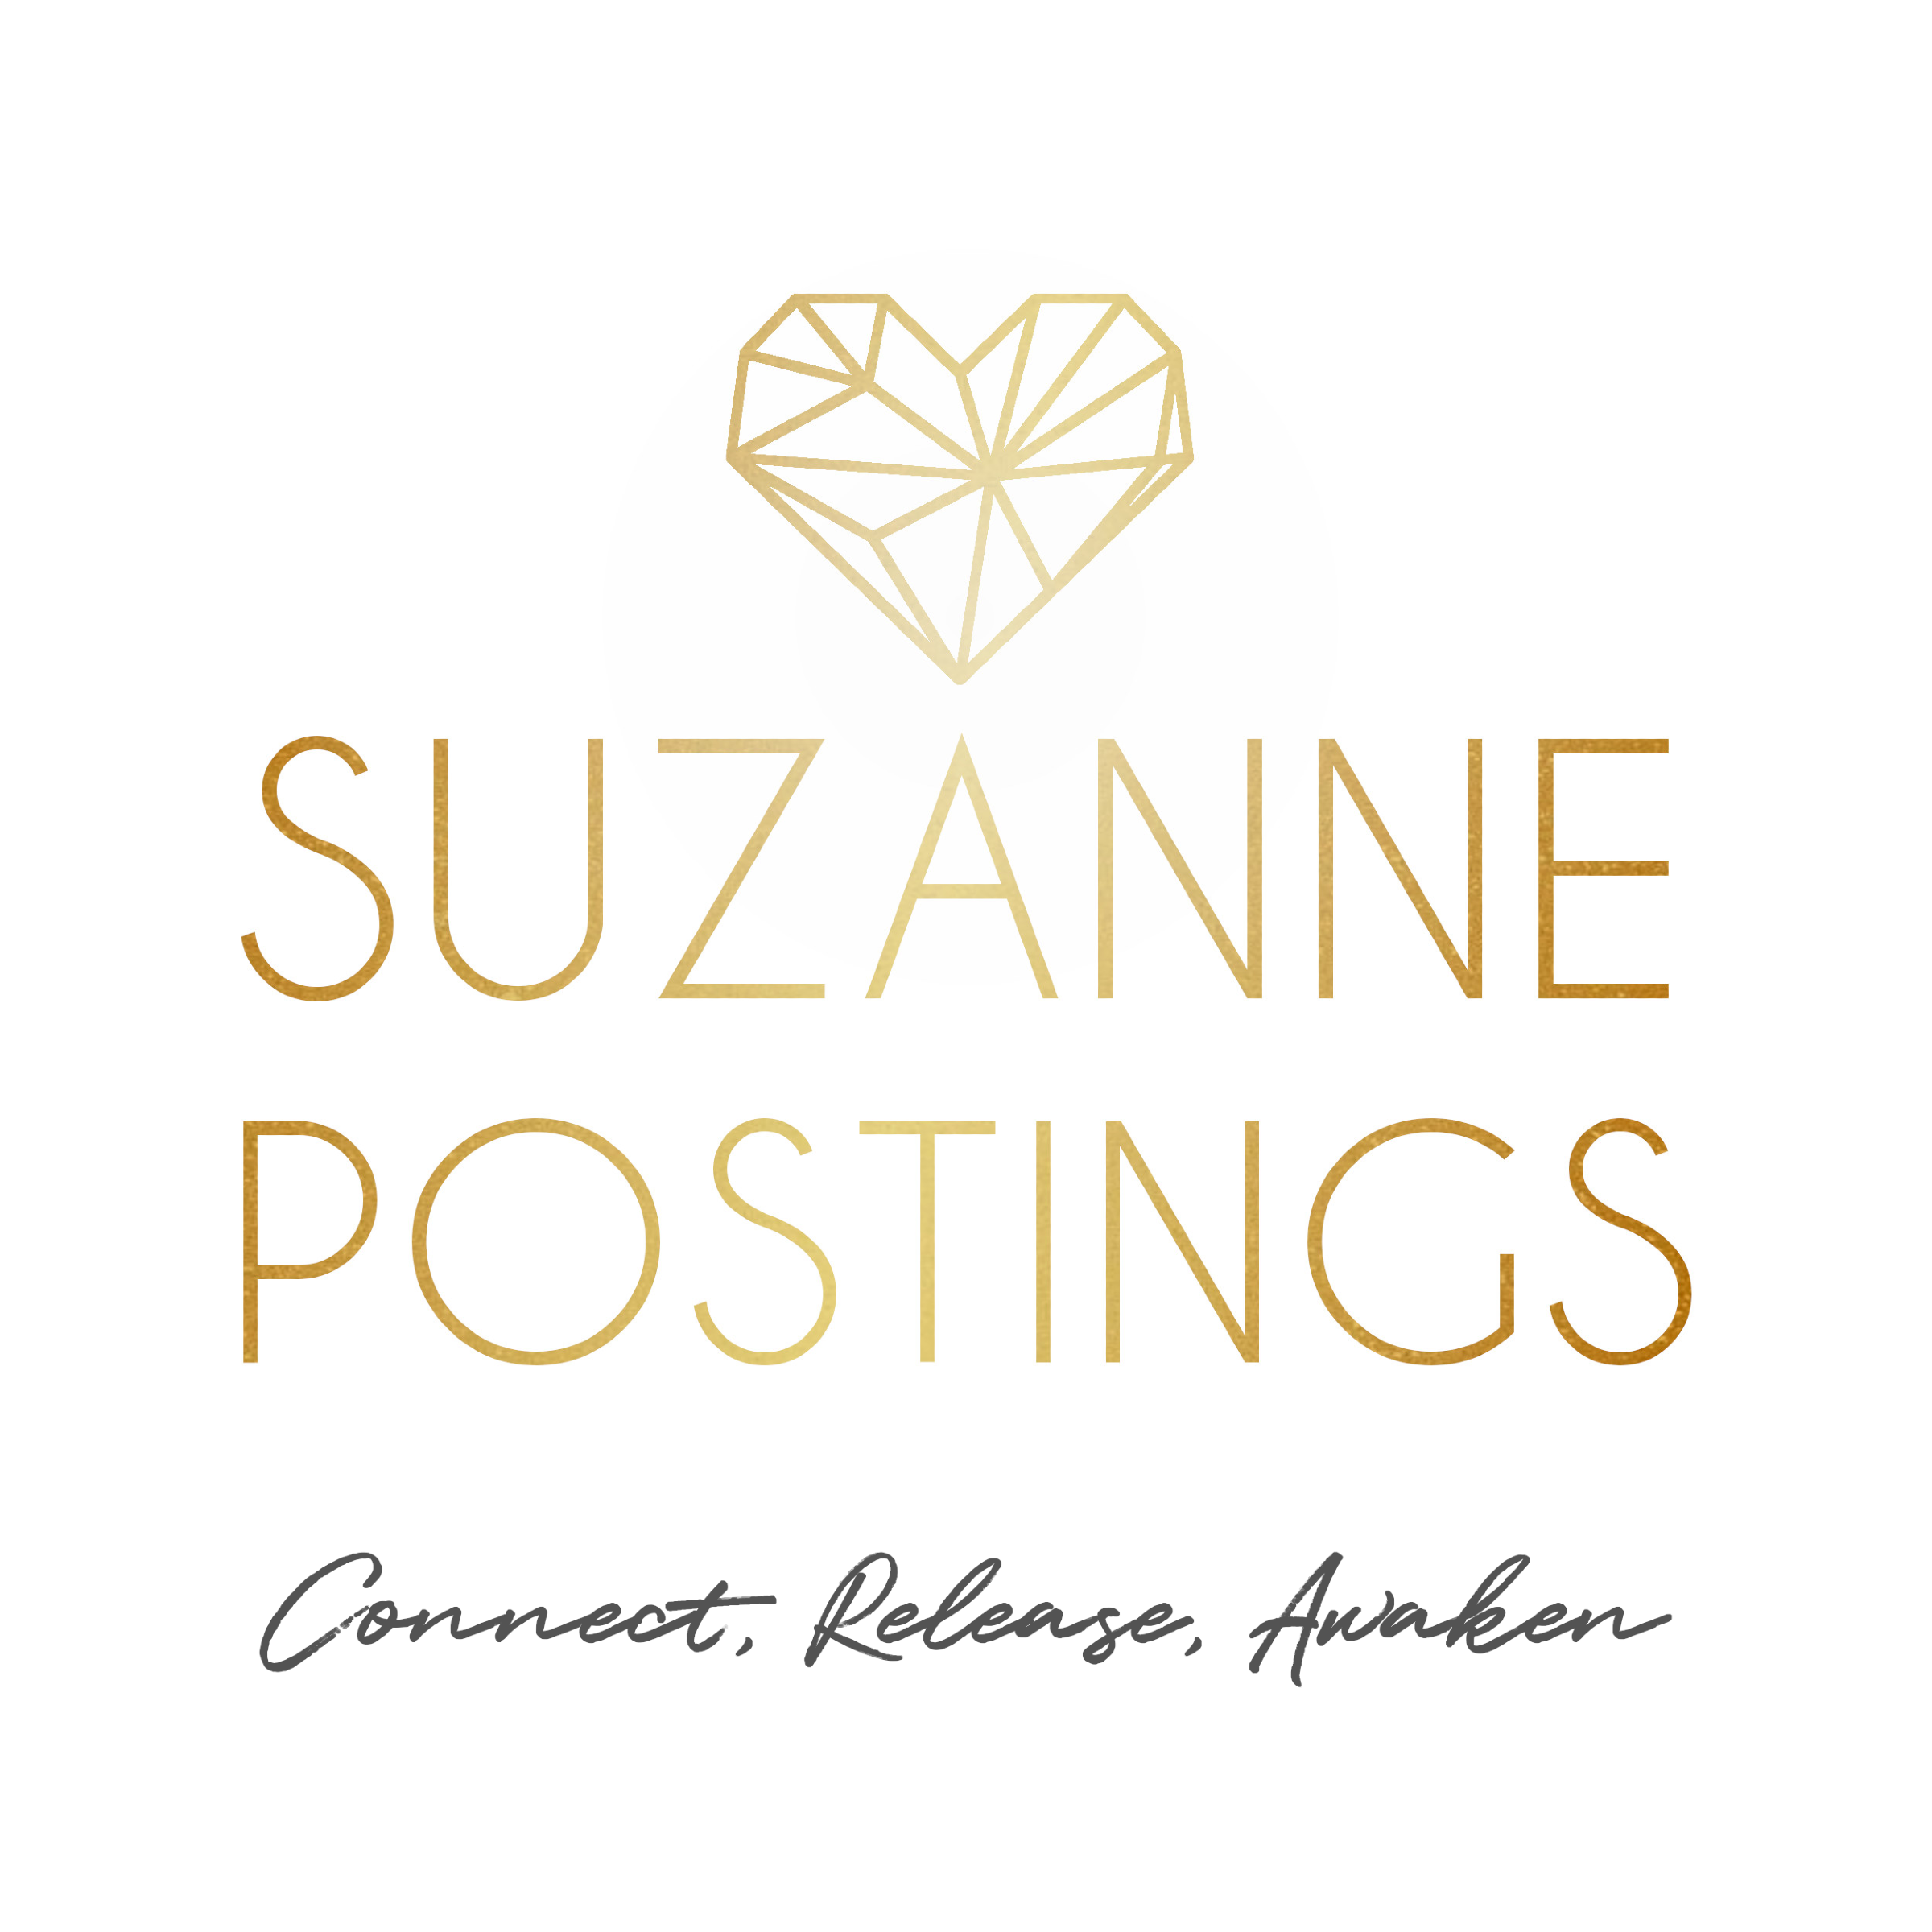 Suzanne Postings